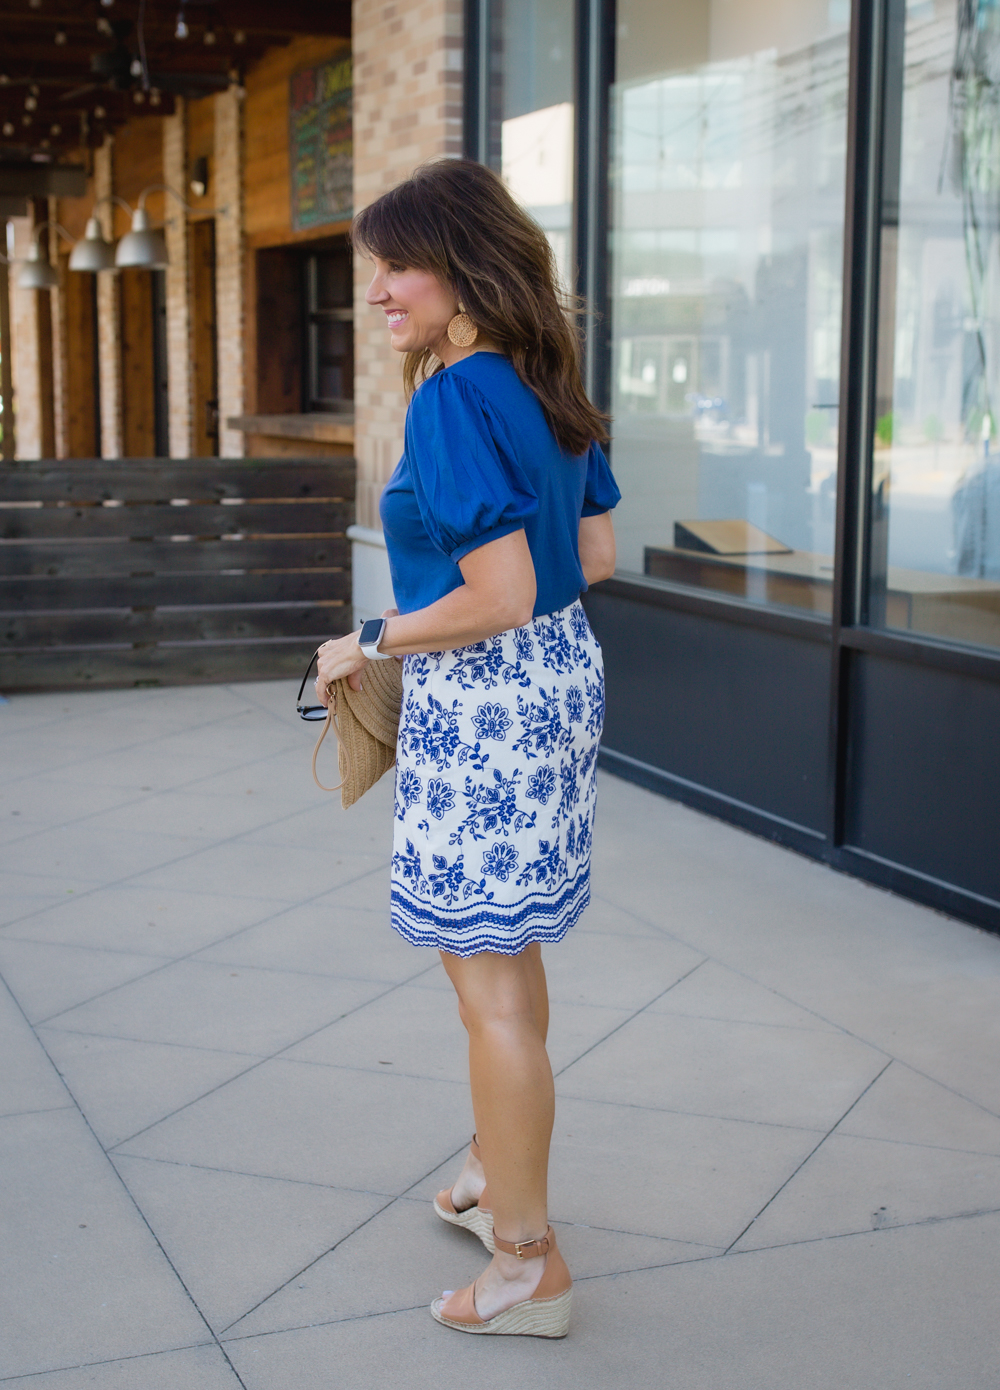 Puff Sleeves + Embroidered Skirt